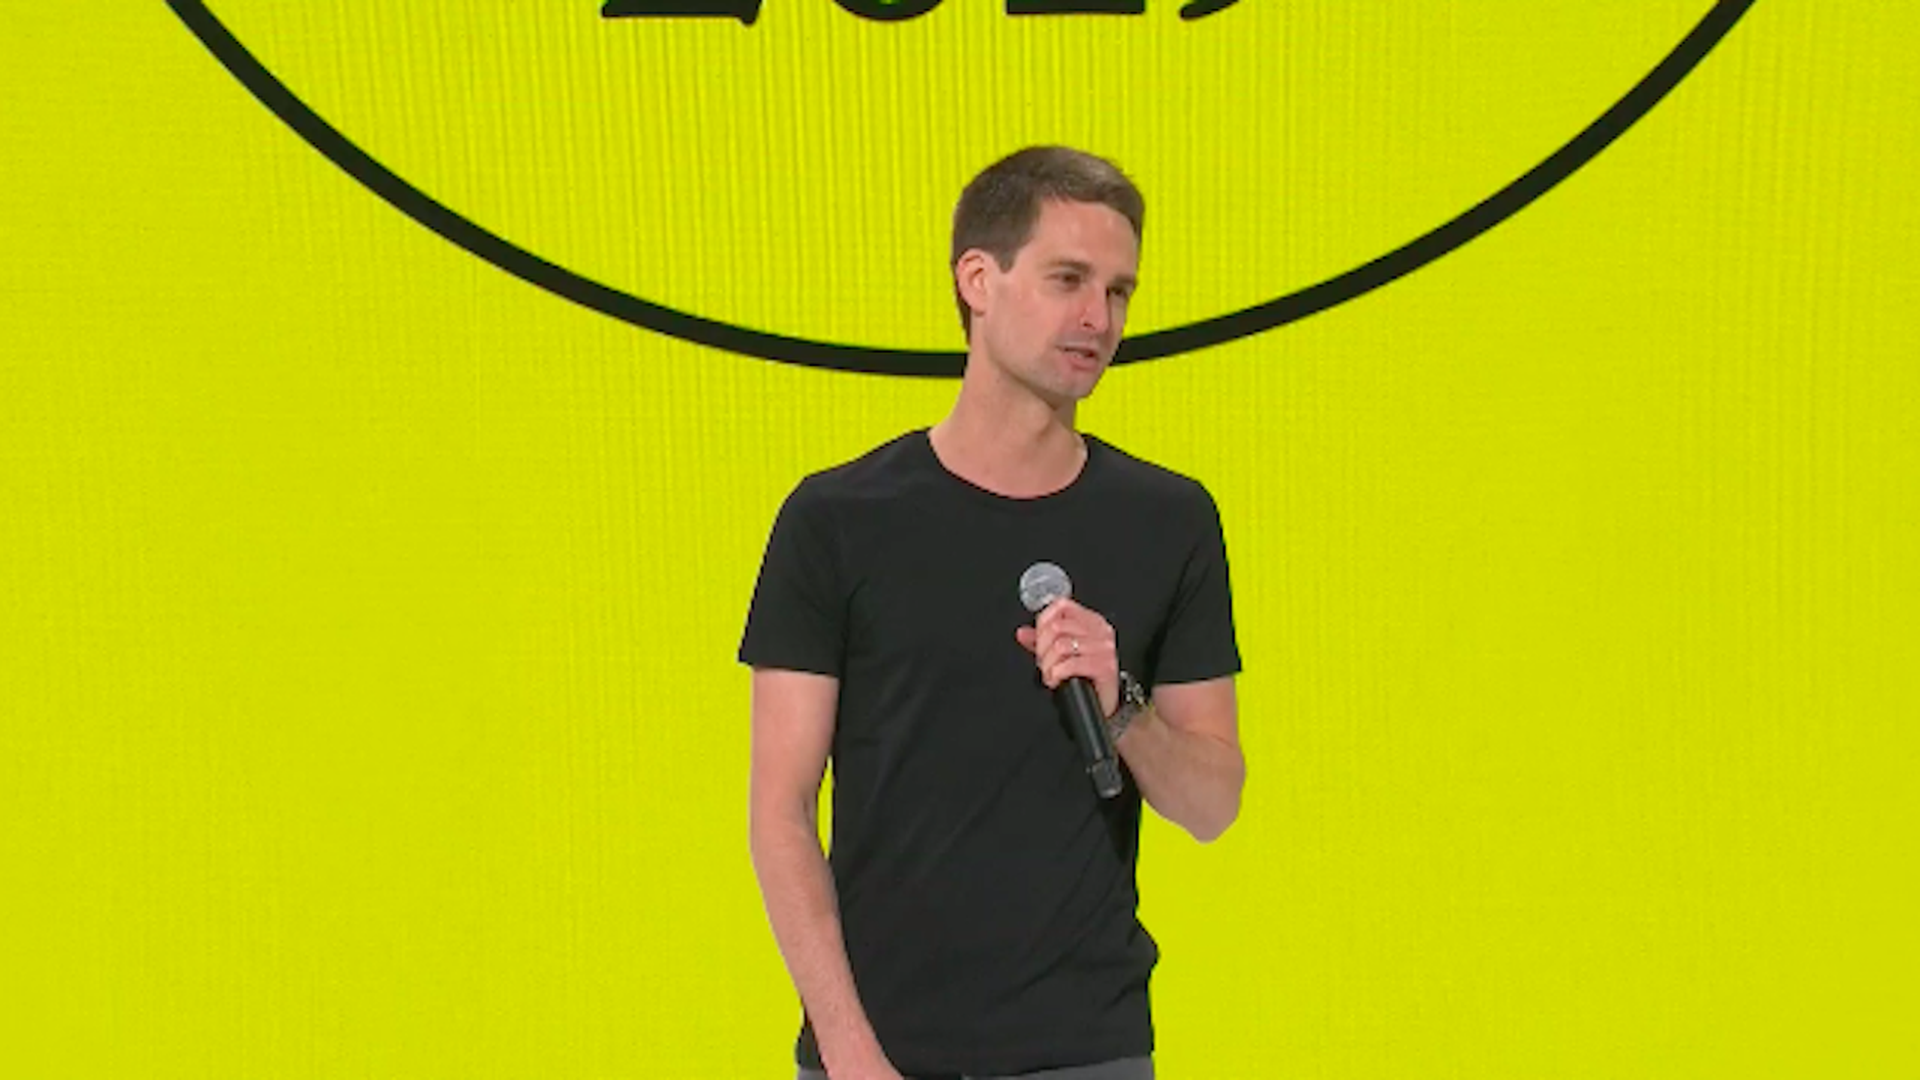 Snapchat CEO Evan Spiegel speaking at Snaphcat Partner Summit on April 4th in Santa Monica